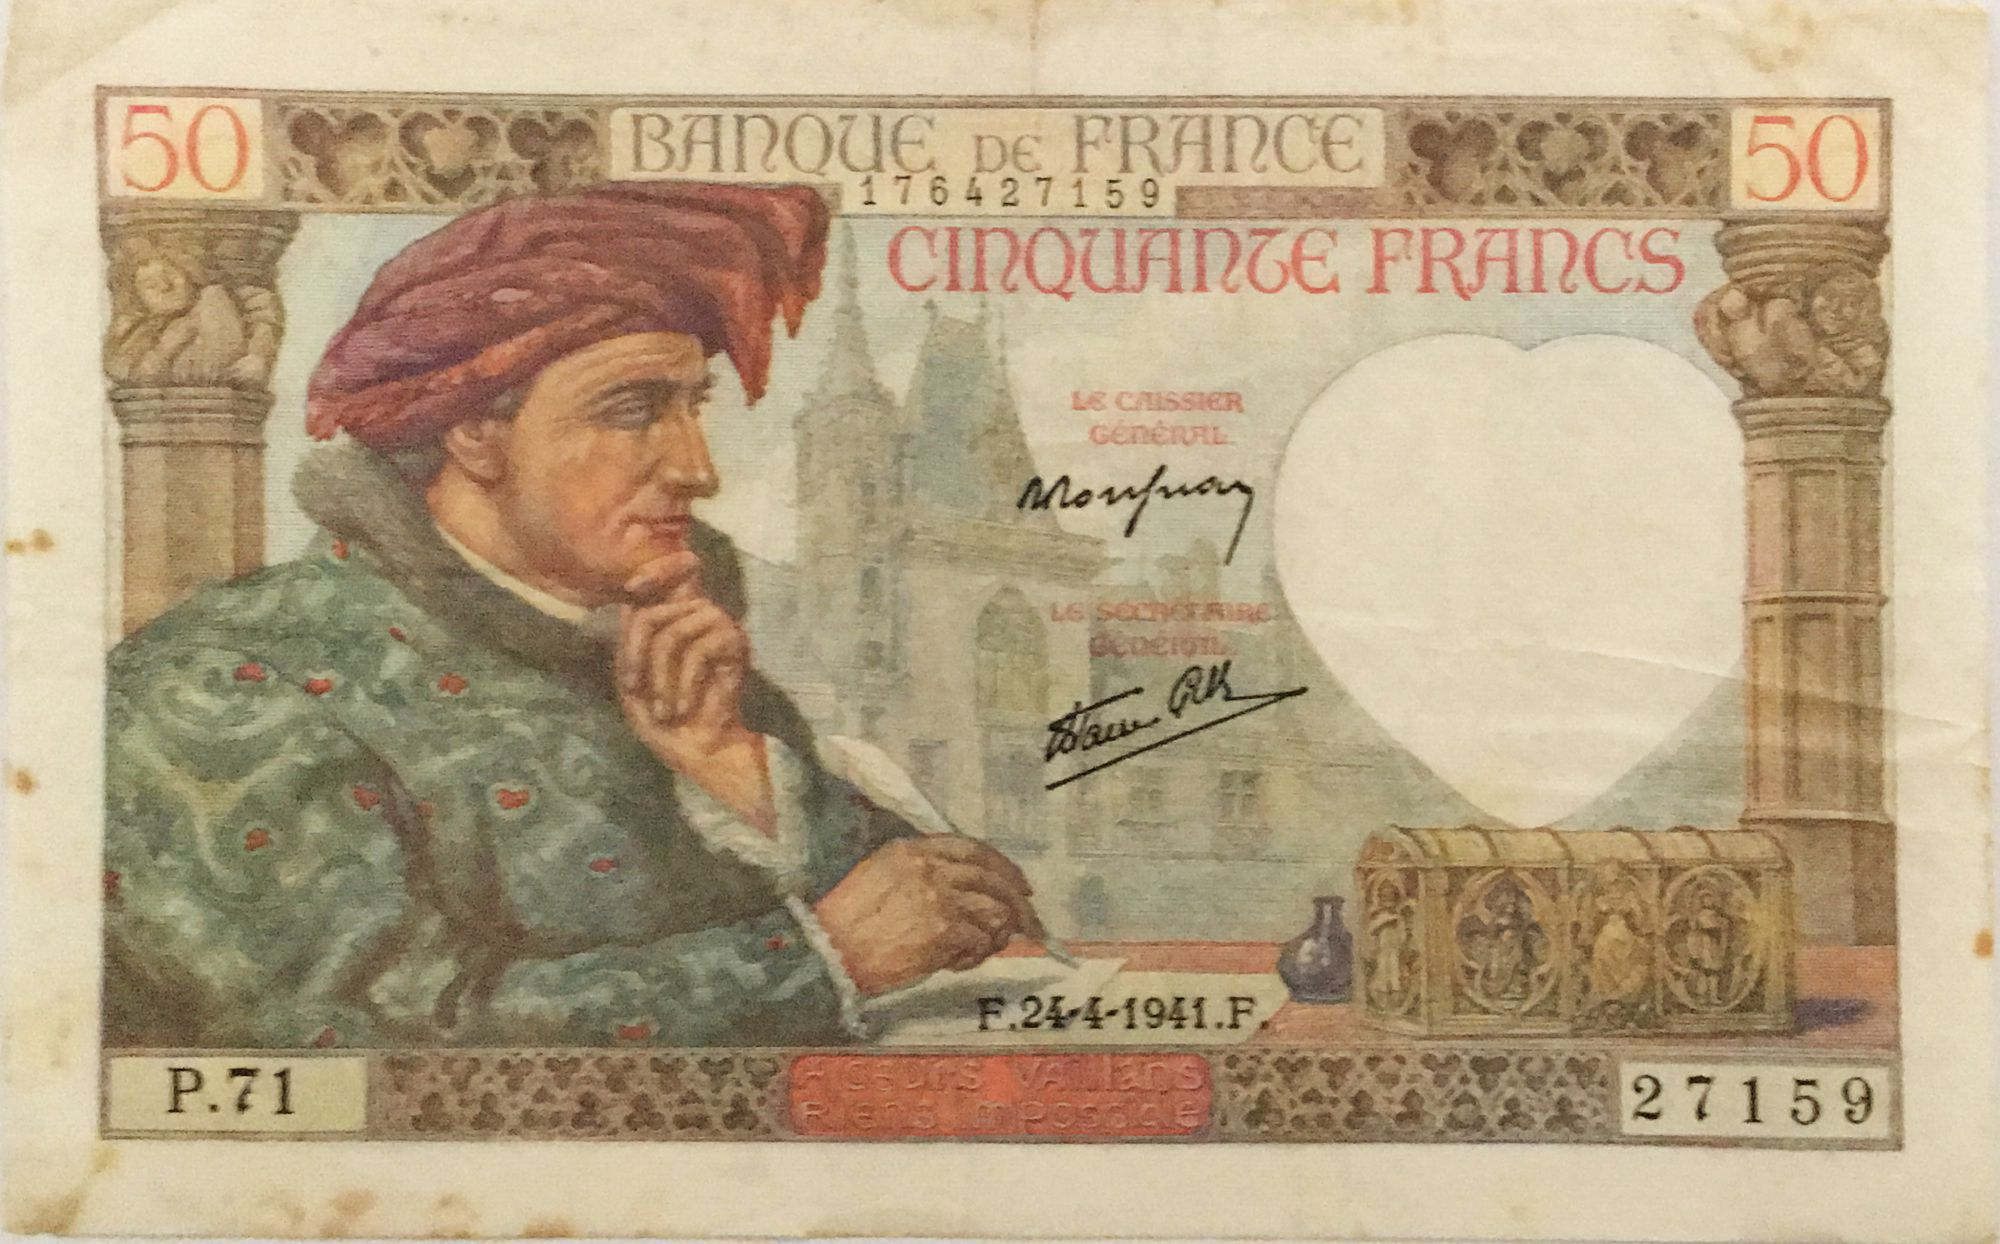 France 50 Francs Jacques Coeur - 24-04-1941 Serial P.71 - VF